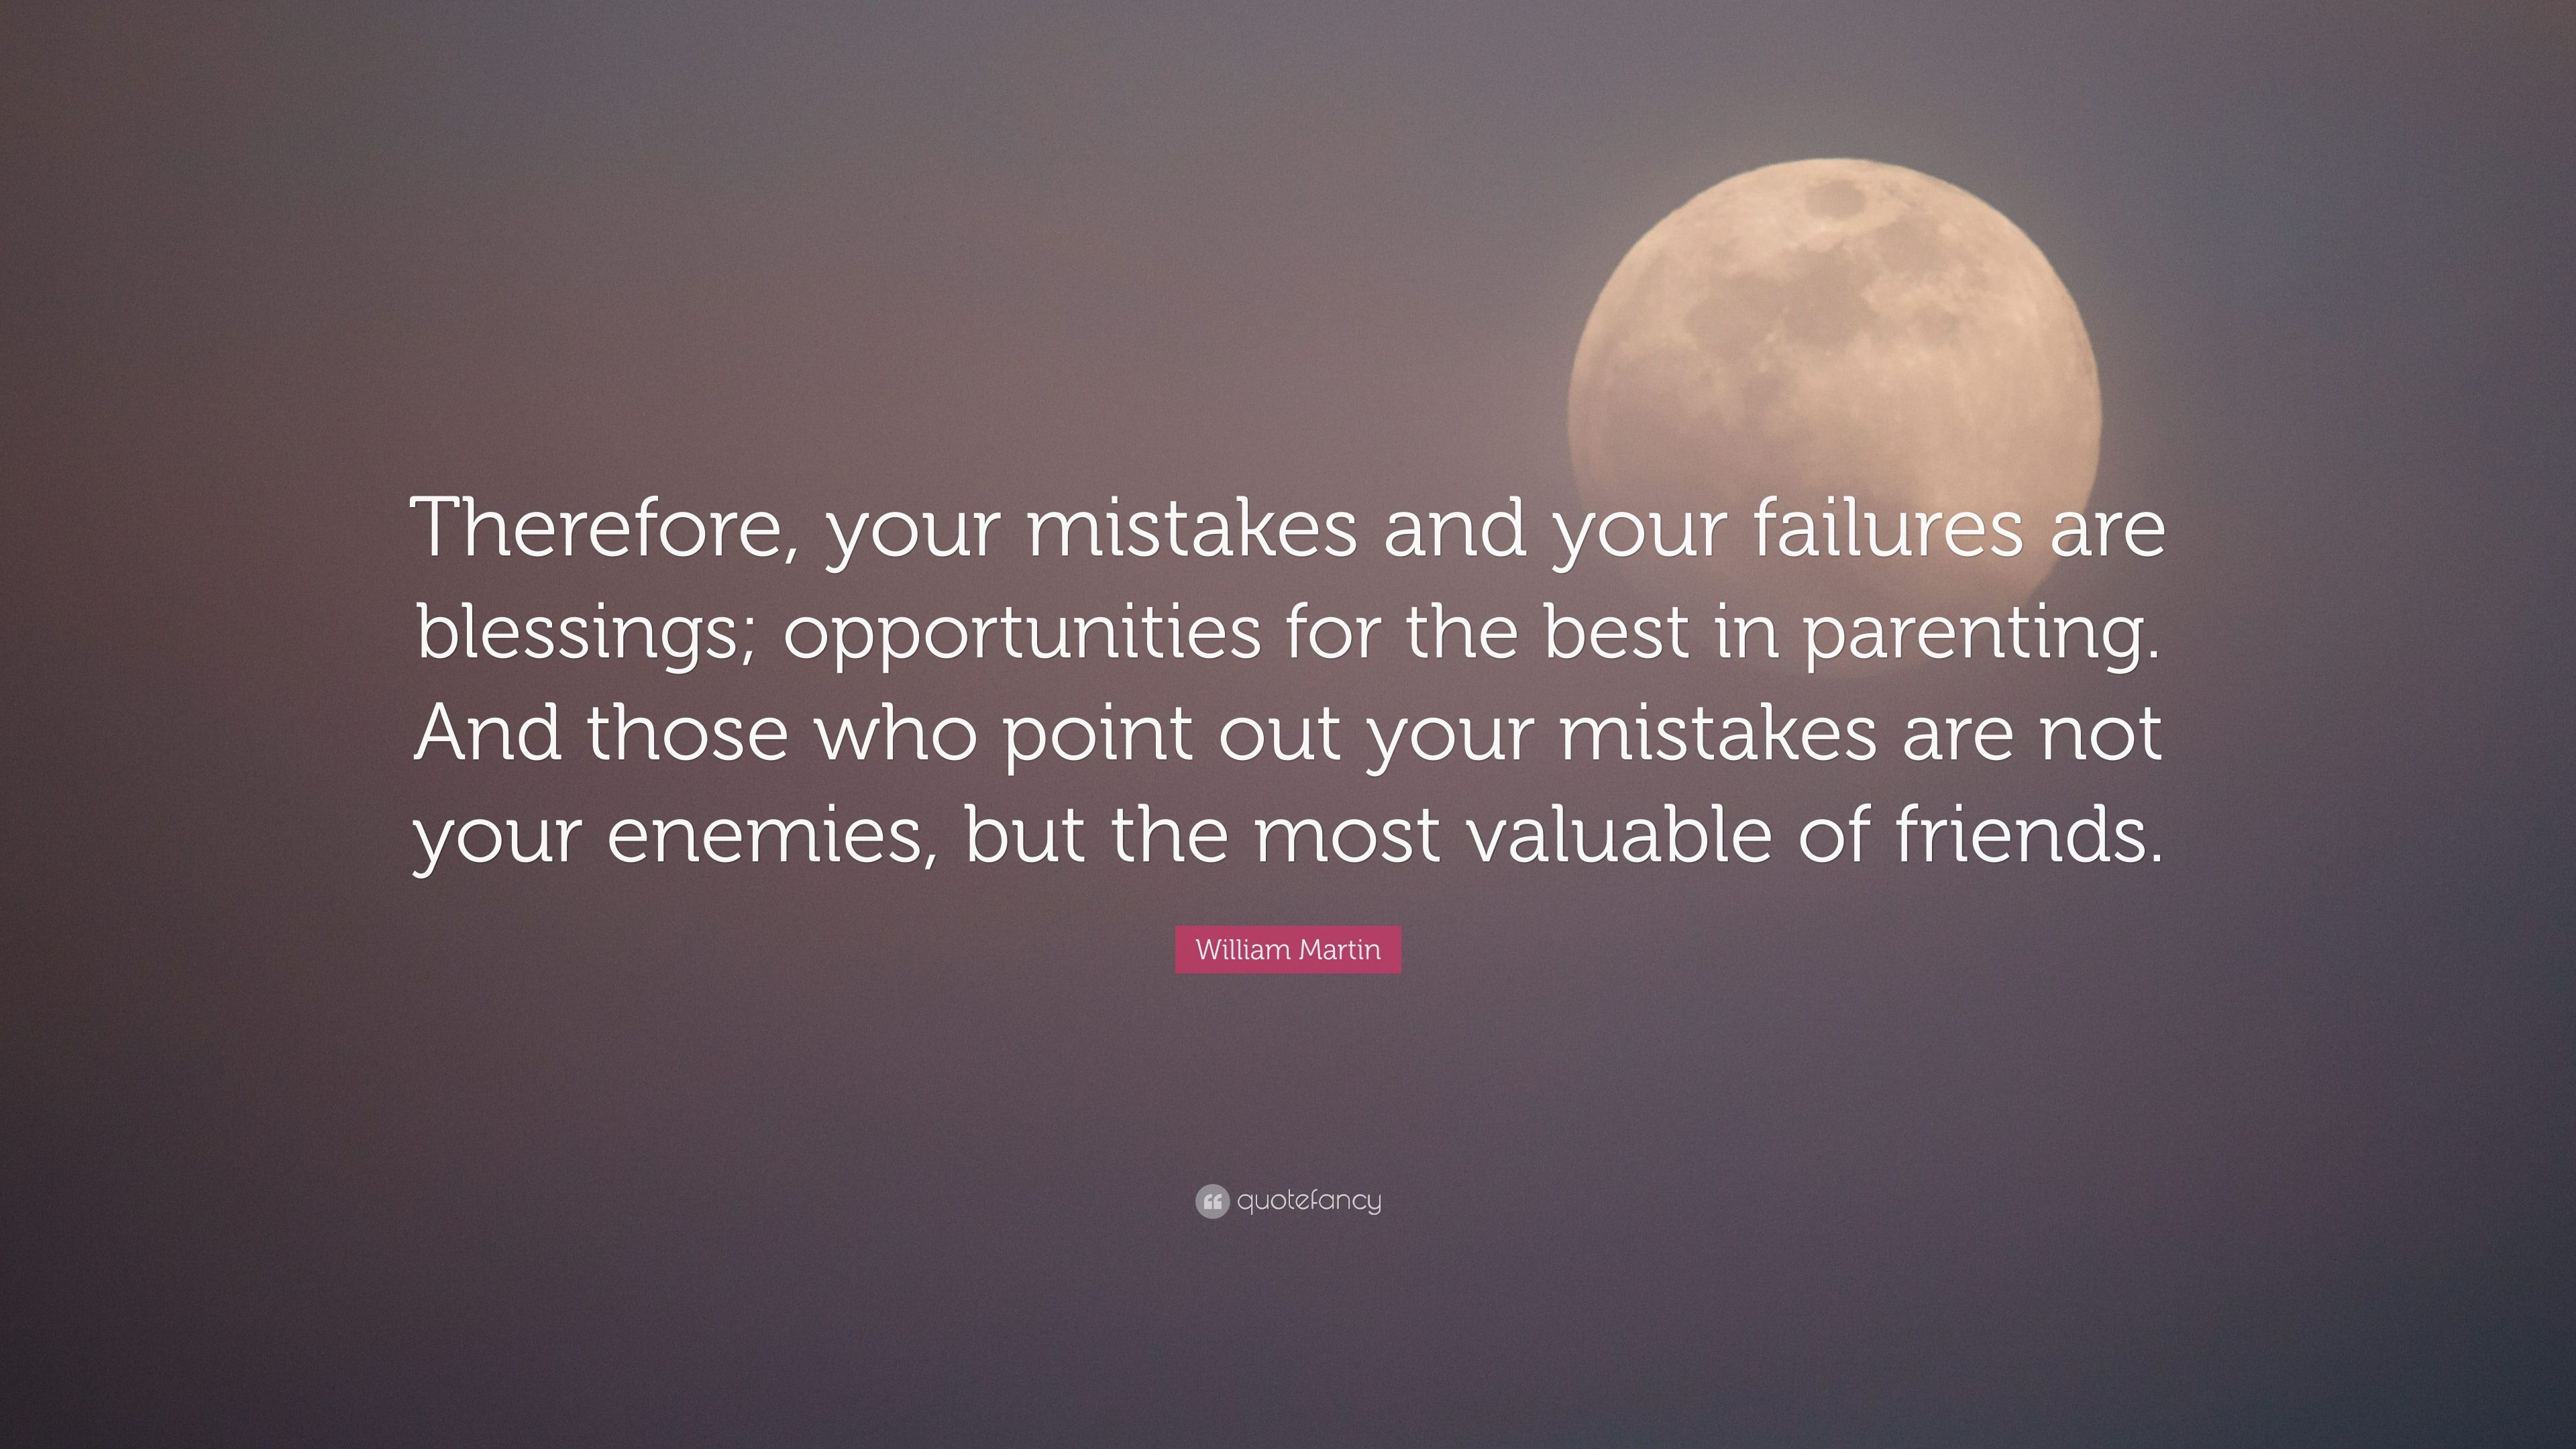 Beautiful William Martin Quote: U201cTherefore, Your Mistakes And Your Failures Are  Blessings; Opportunities